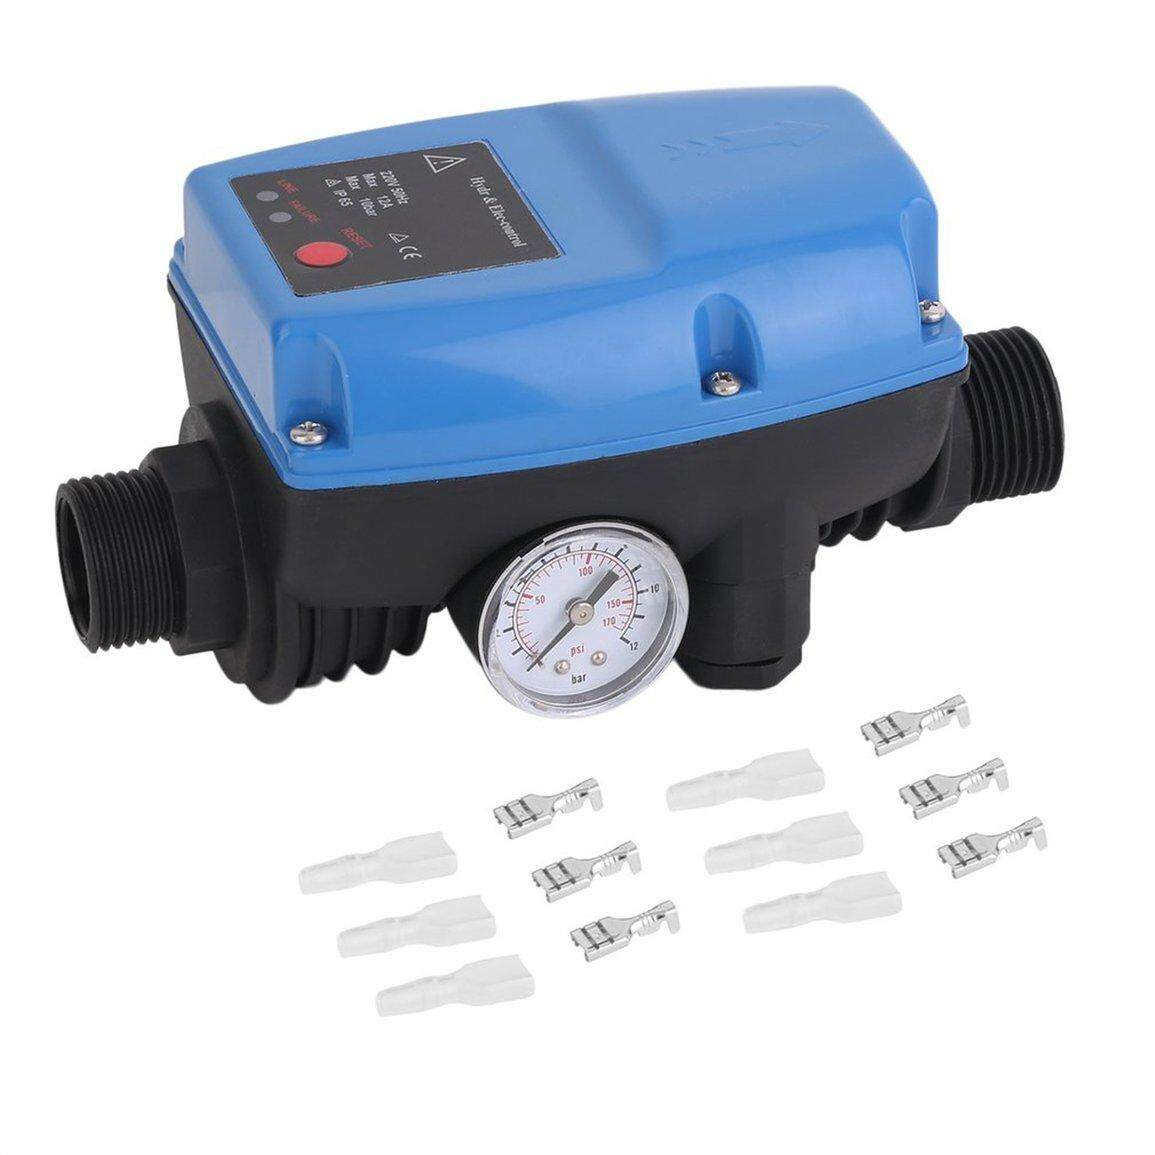 Best Sales SKD-5 Electronic Automatic Water Pump Pressure Control Switch With Gauge